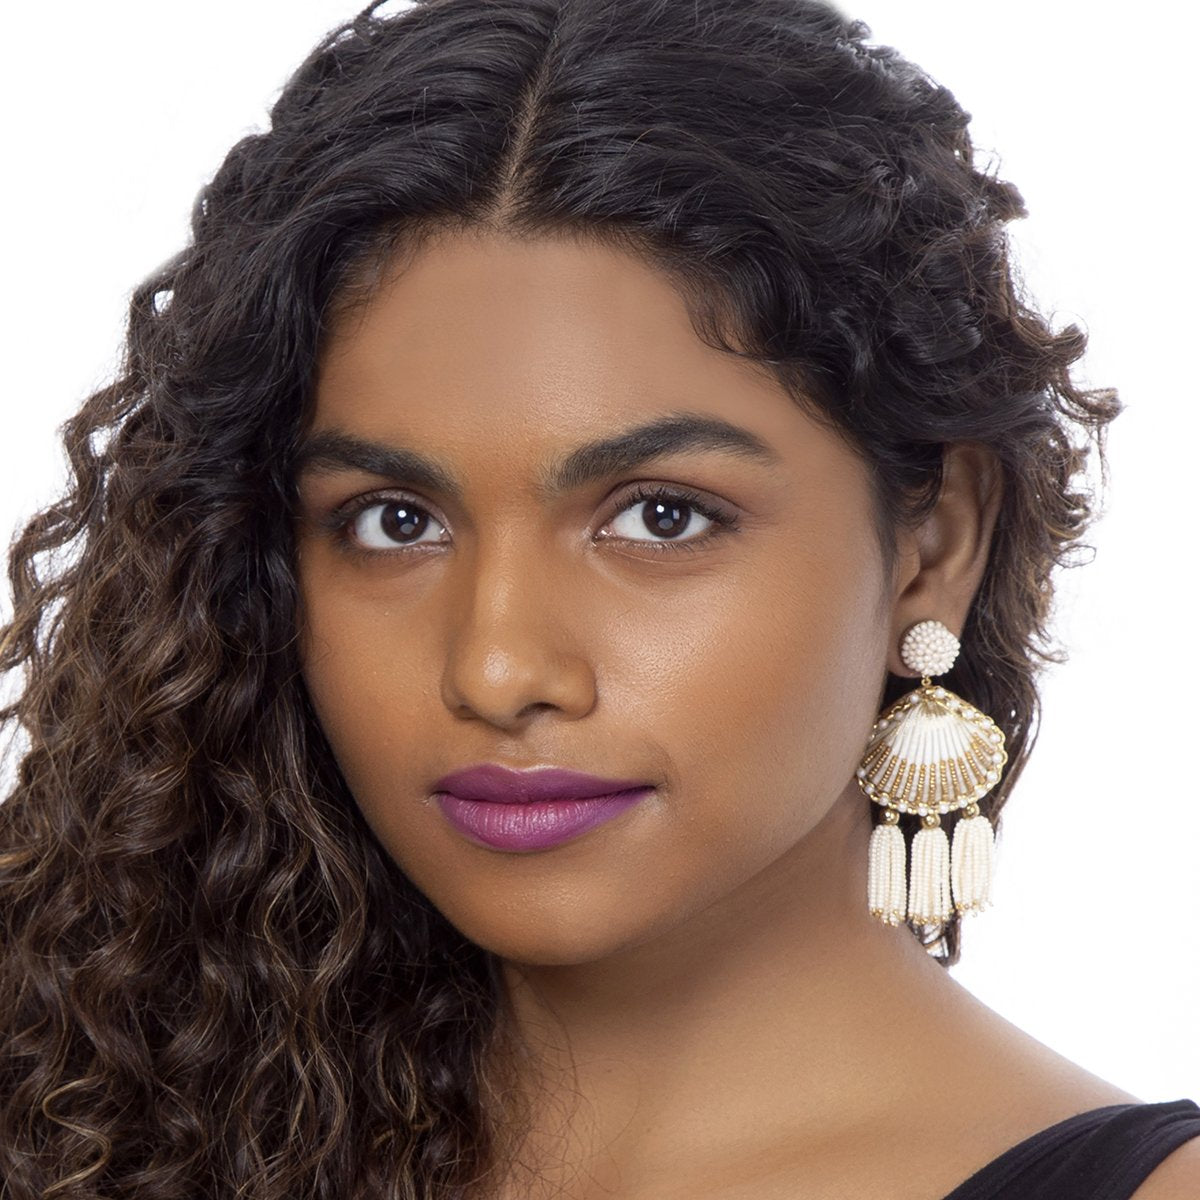 Model wearing handmade gold beaded shell earrings